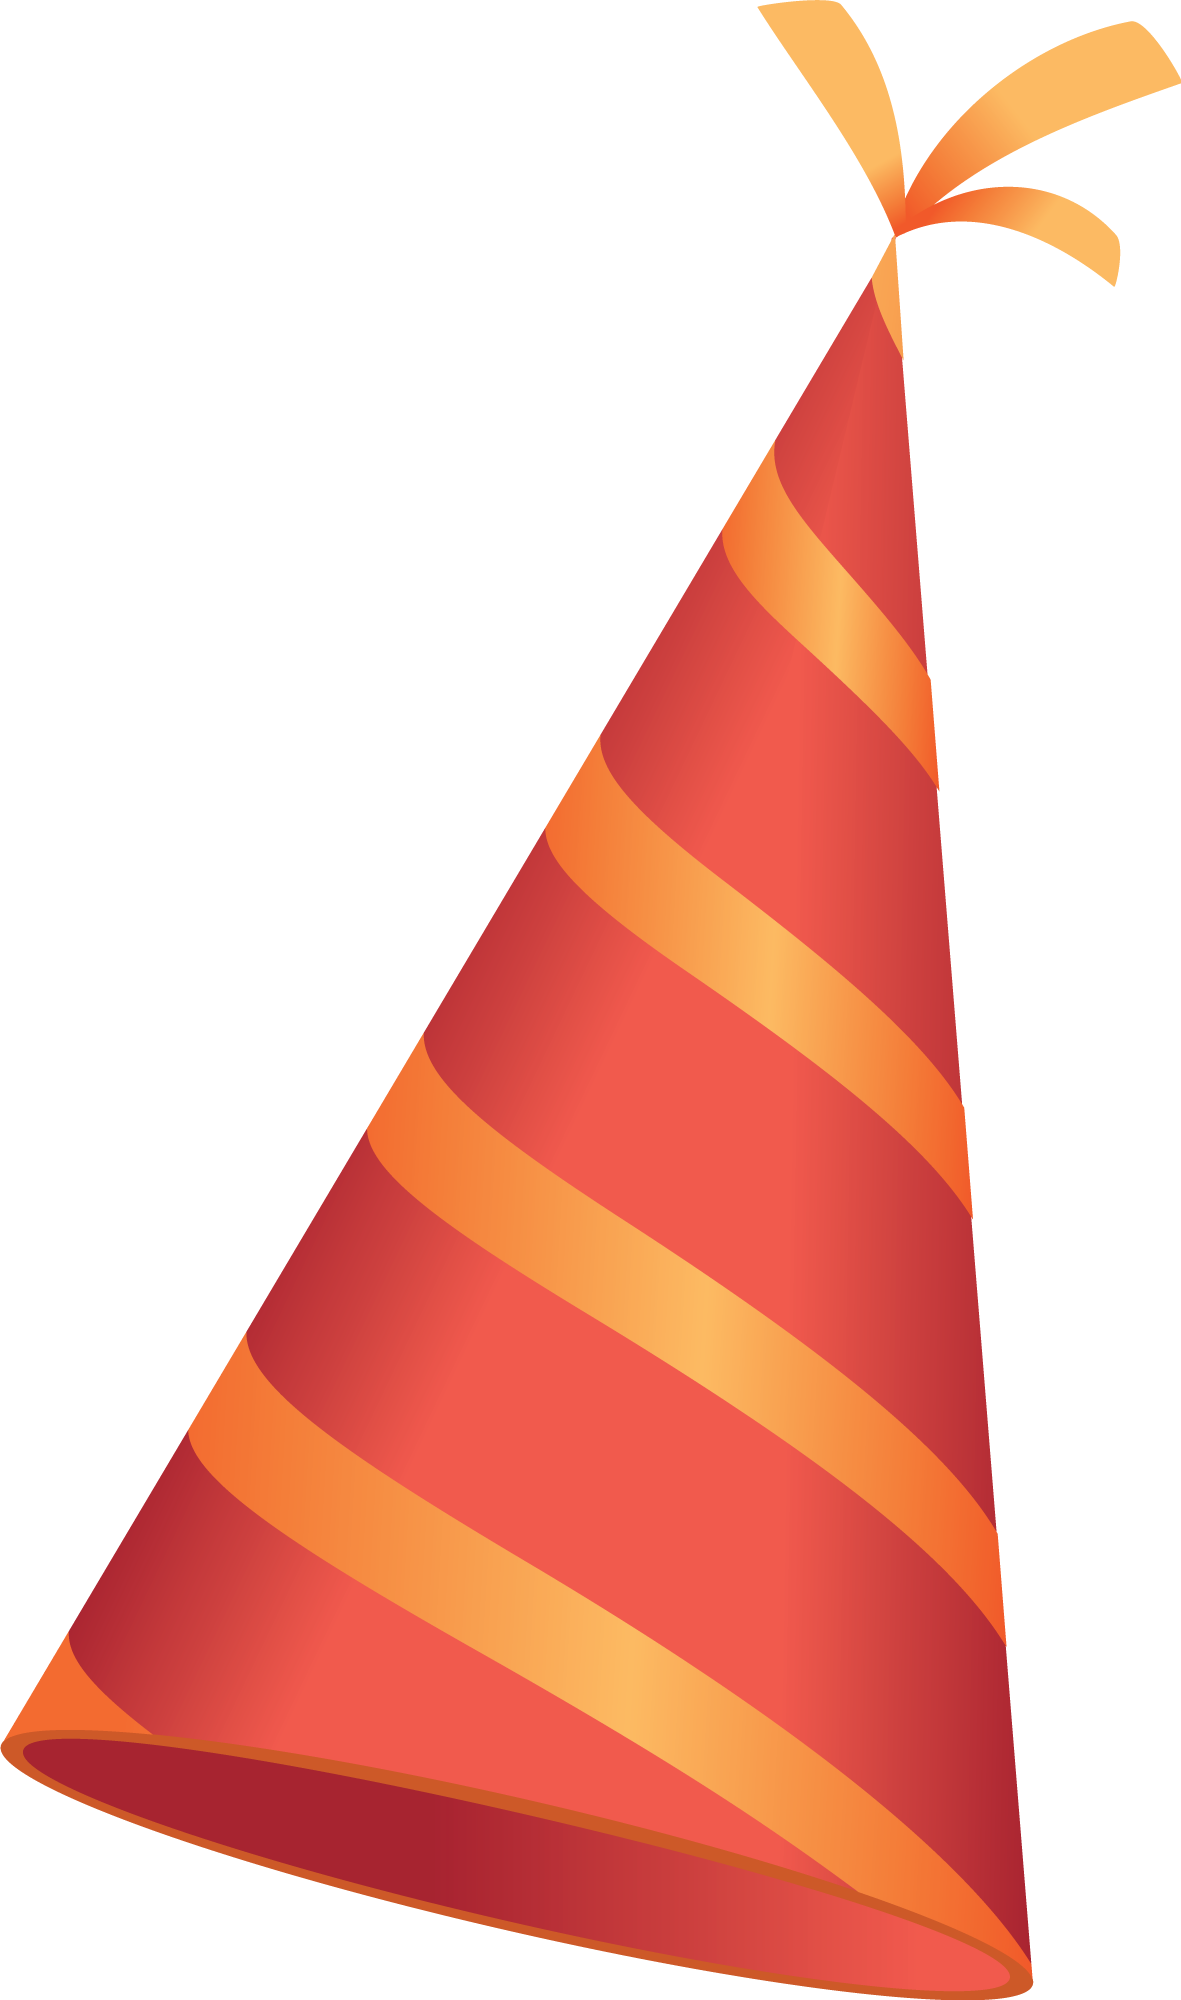 Happy birthday hat png. Transparent images pluspng image